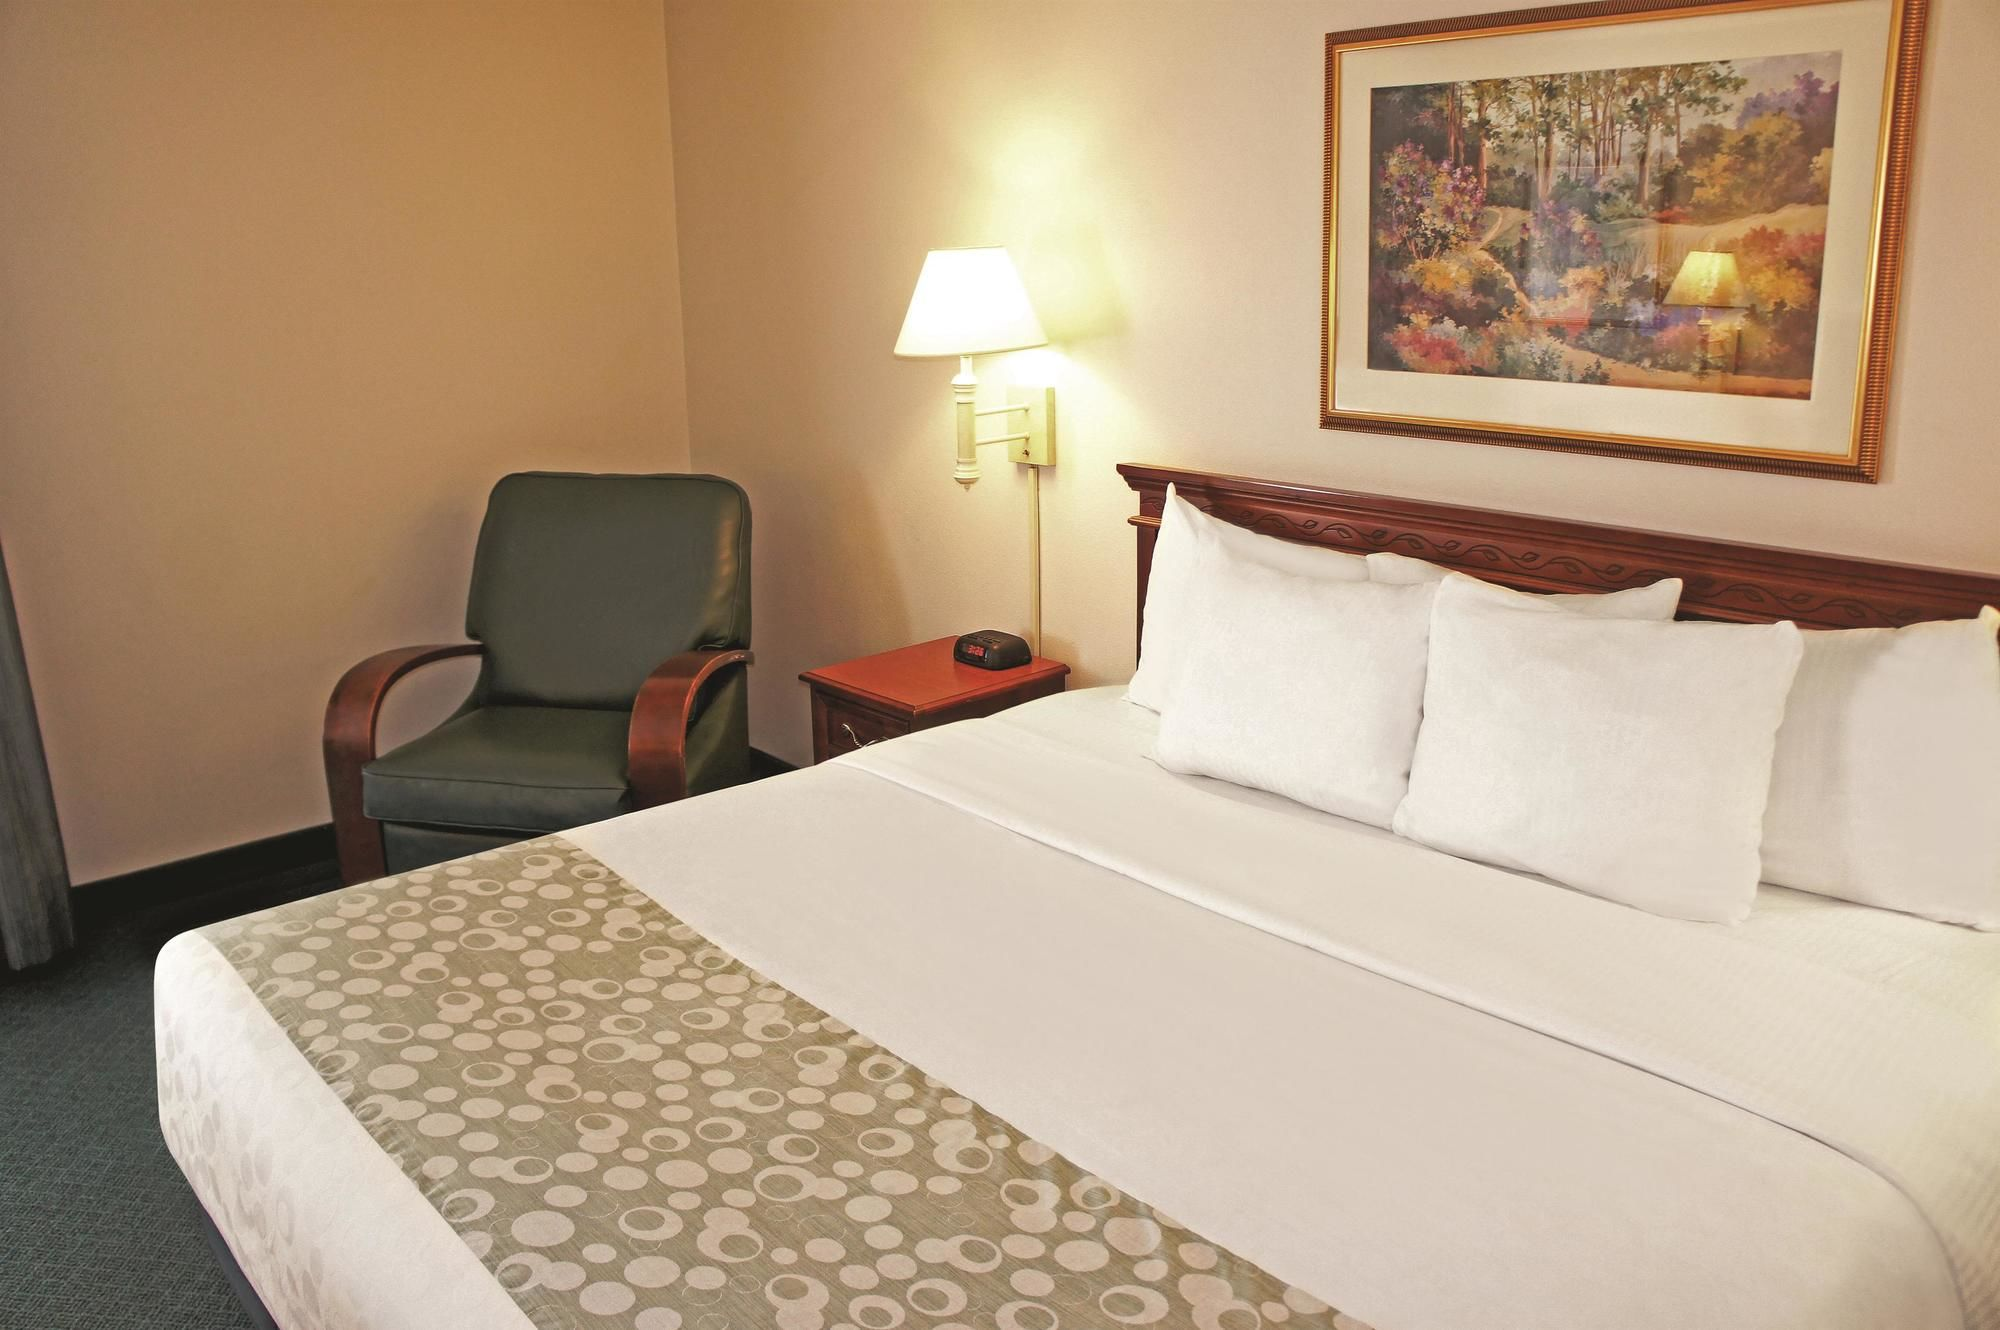 La Quinta Inn & Suites Nashville Franklin in Franklin, TN